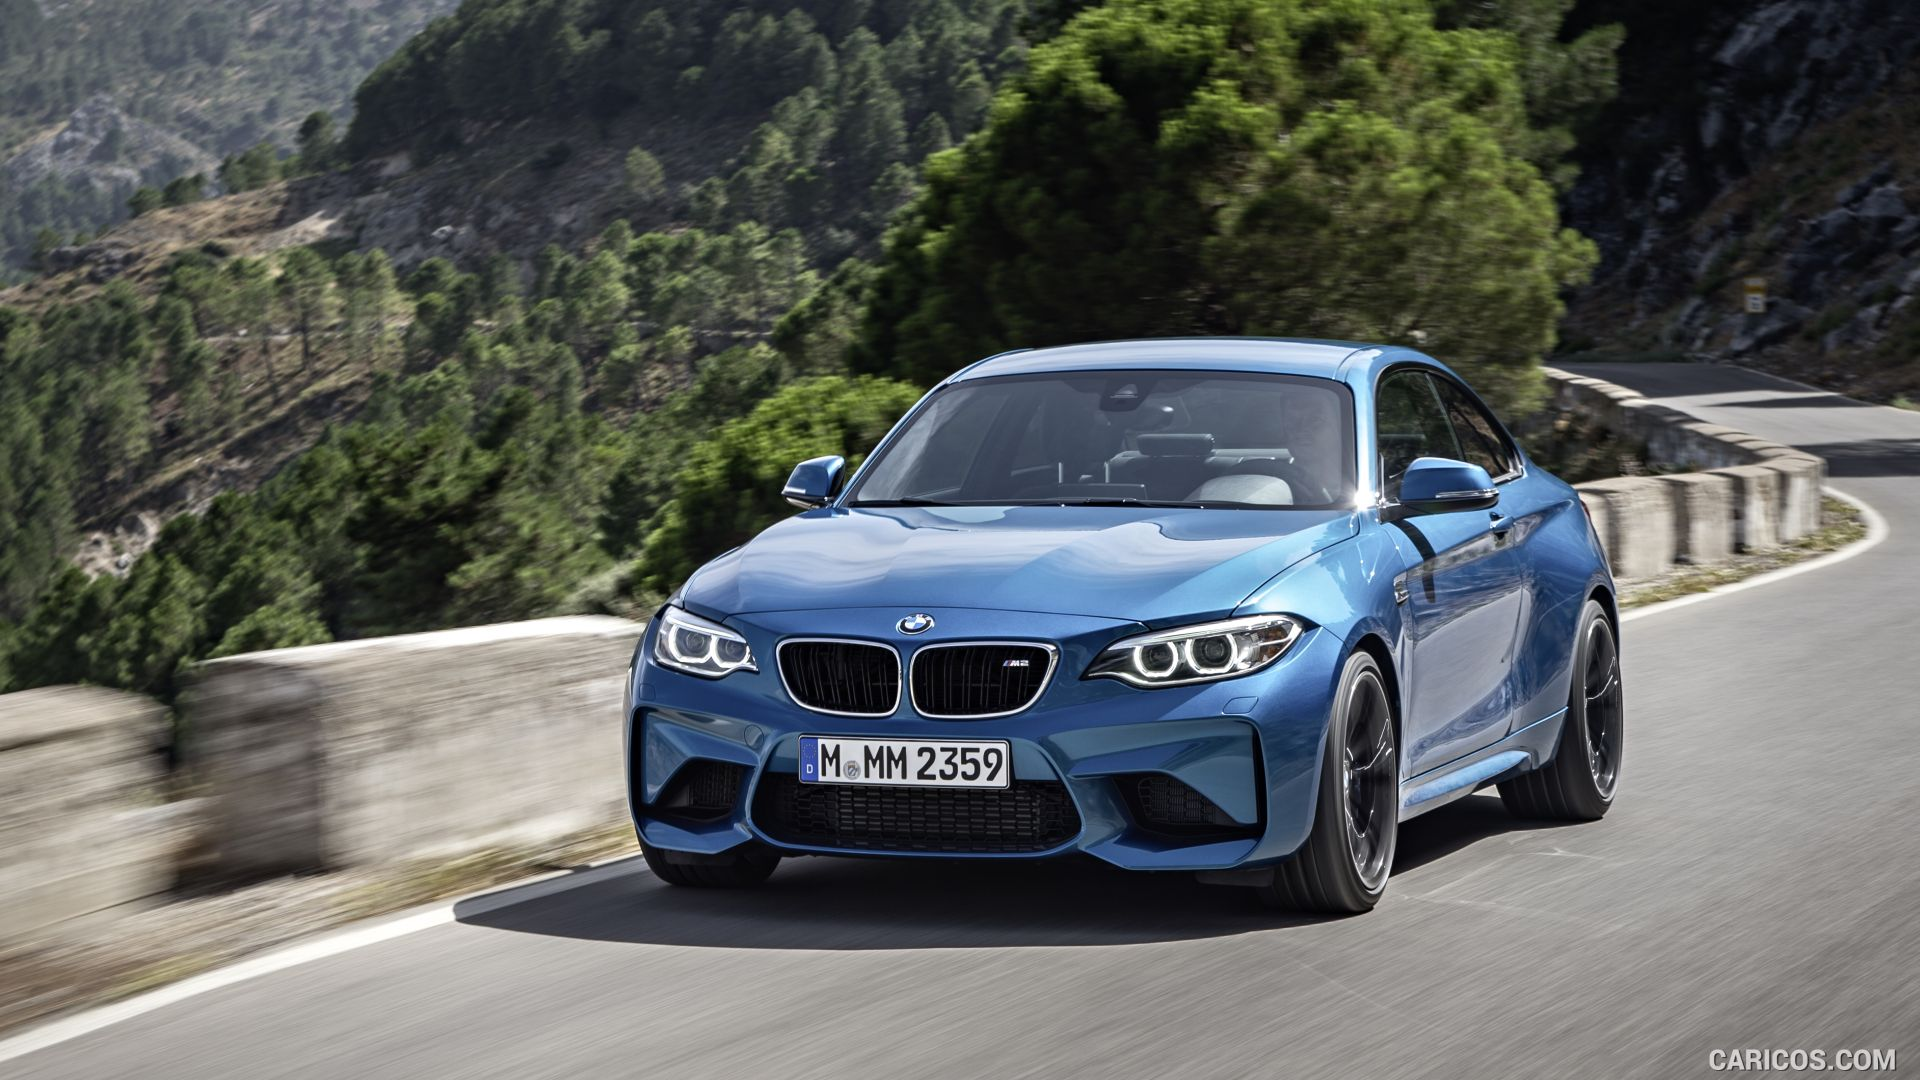 Beautiful BMW M2 Wallpaper